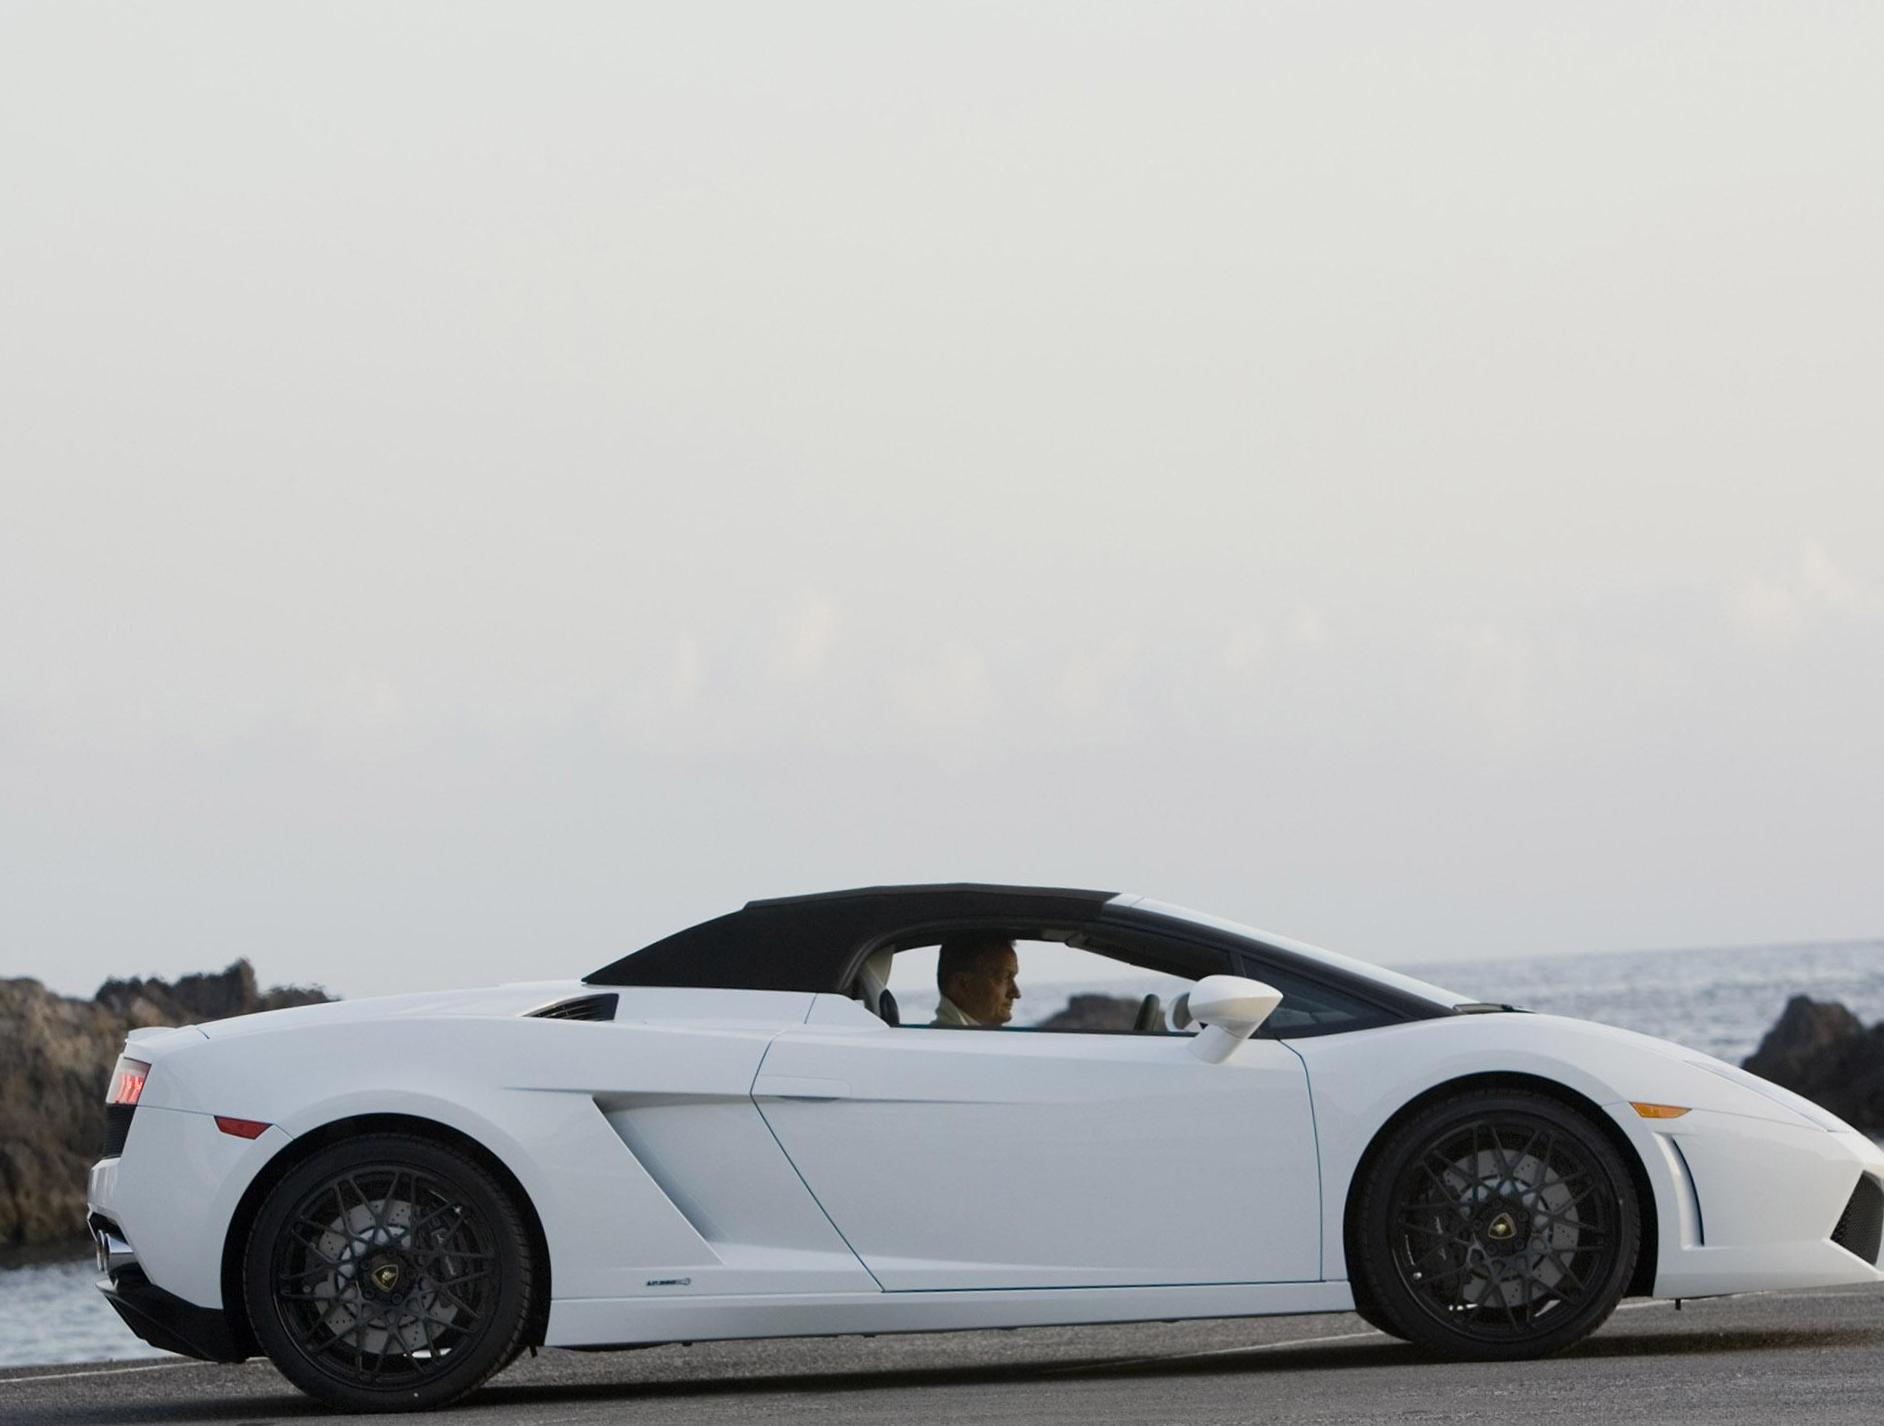 Gallardo LP 560-4 Spyder Lamborghini how mach 2013